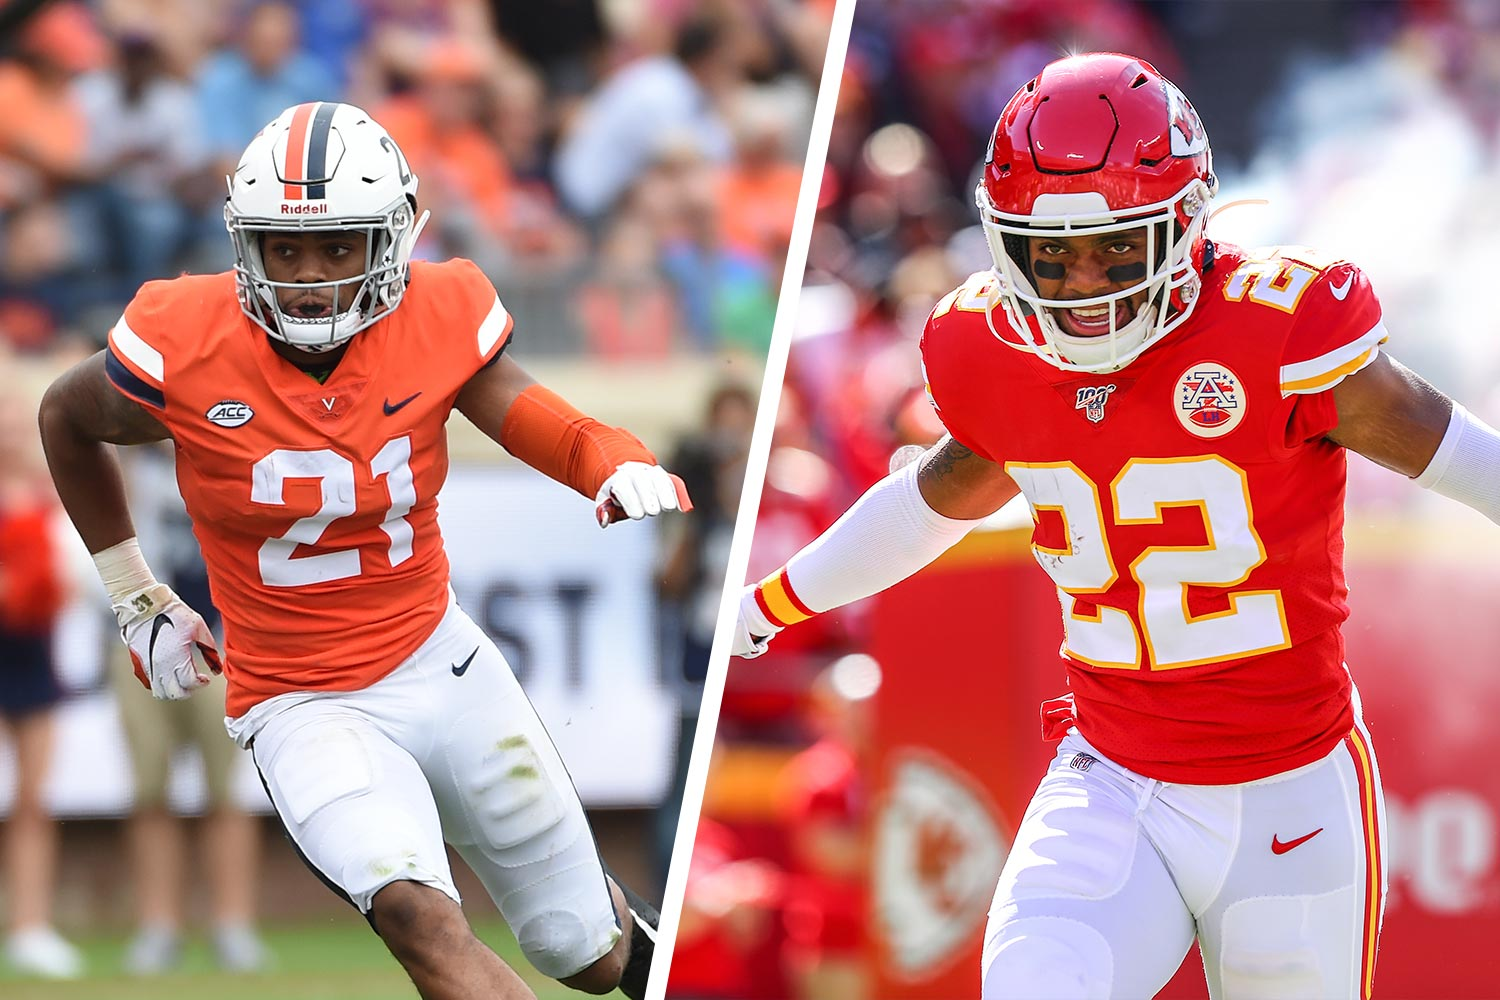 After missing last season's Super Bowl due to a knee injury, former UVA football star Juan Thornhill gets another crack at it on Sunday. (Photos courtesy Steve Sanders, Kansas City Chiefs and UVA Athletics)